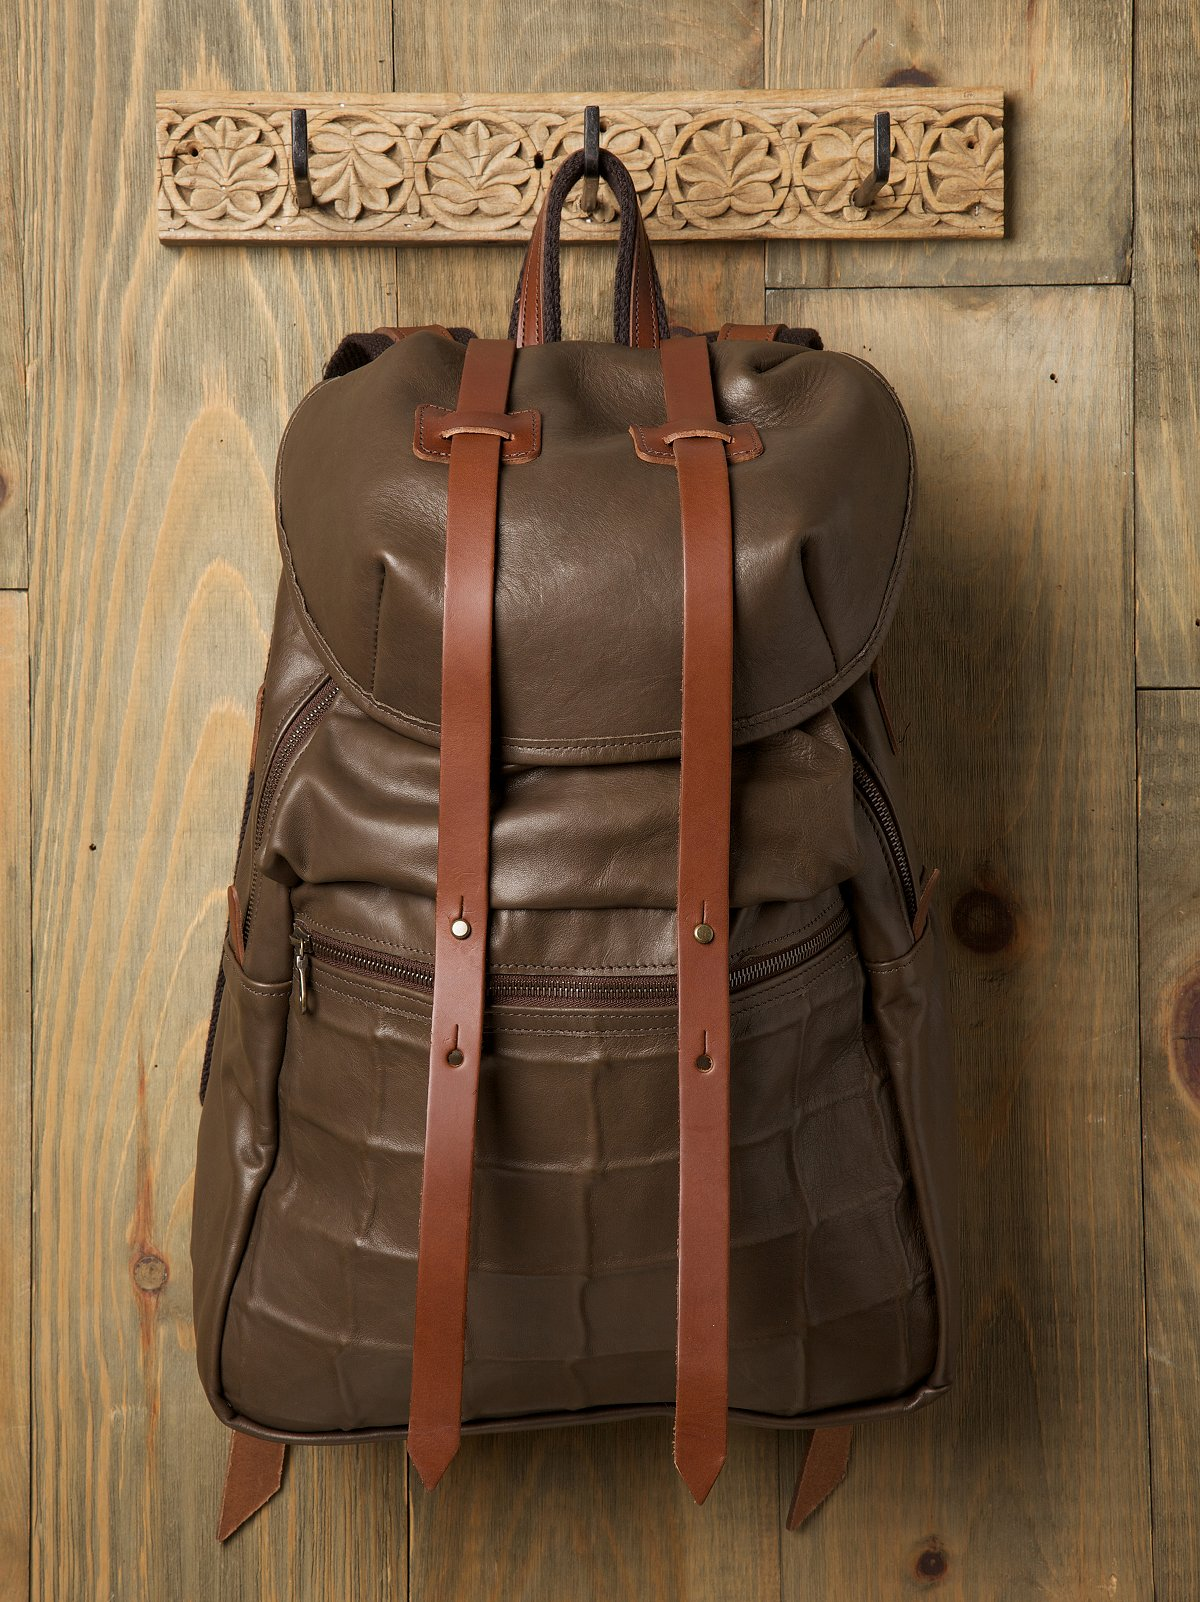 Double Strap Rucksack by Jas MB